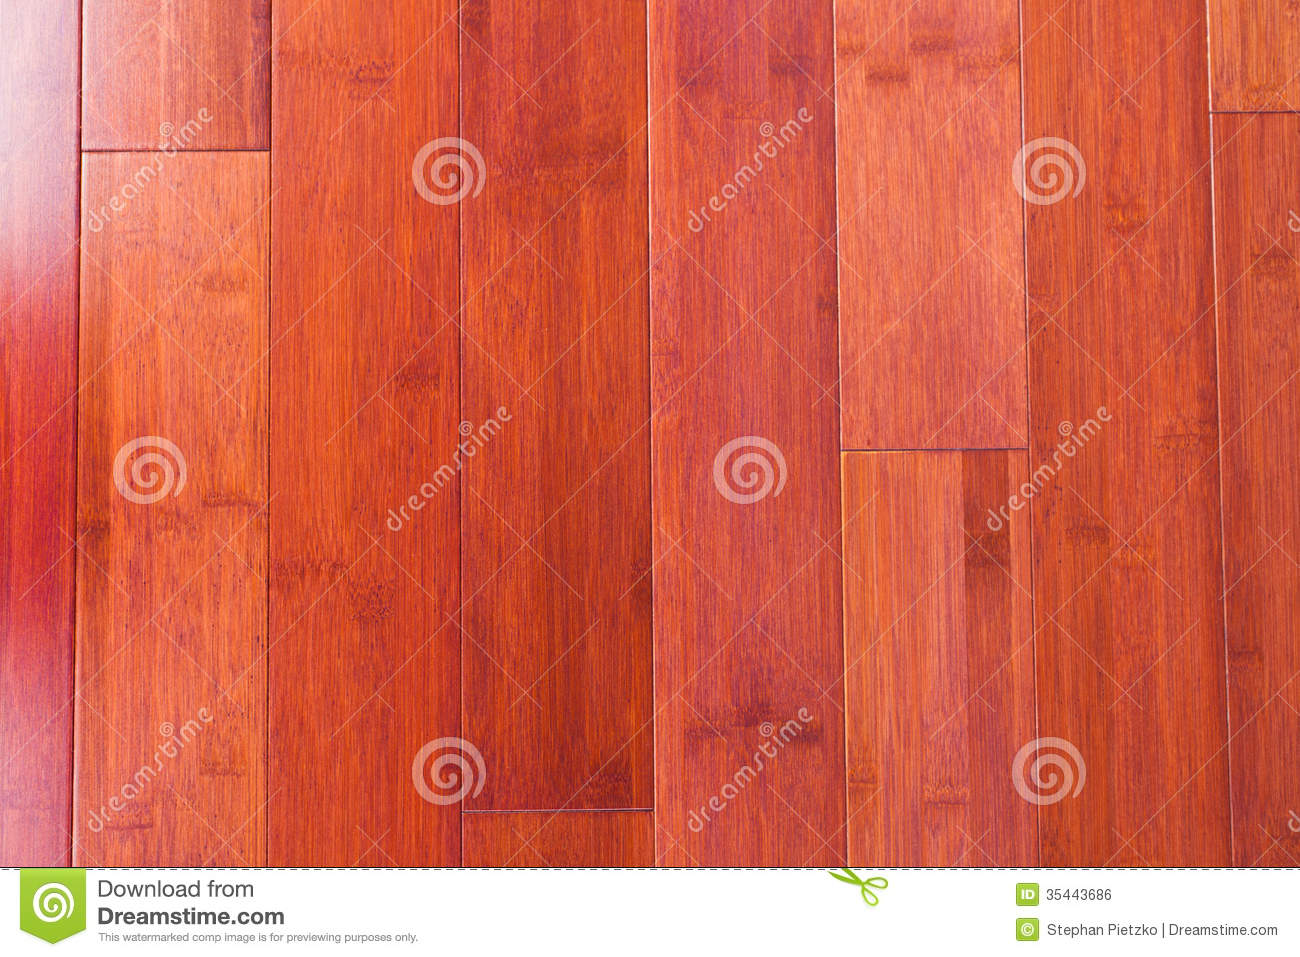 Wooden Bamboo Flooring Grain Texture Background Royalty